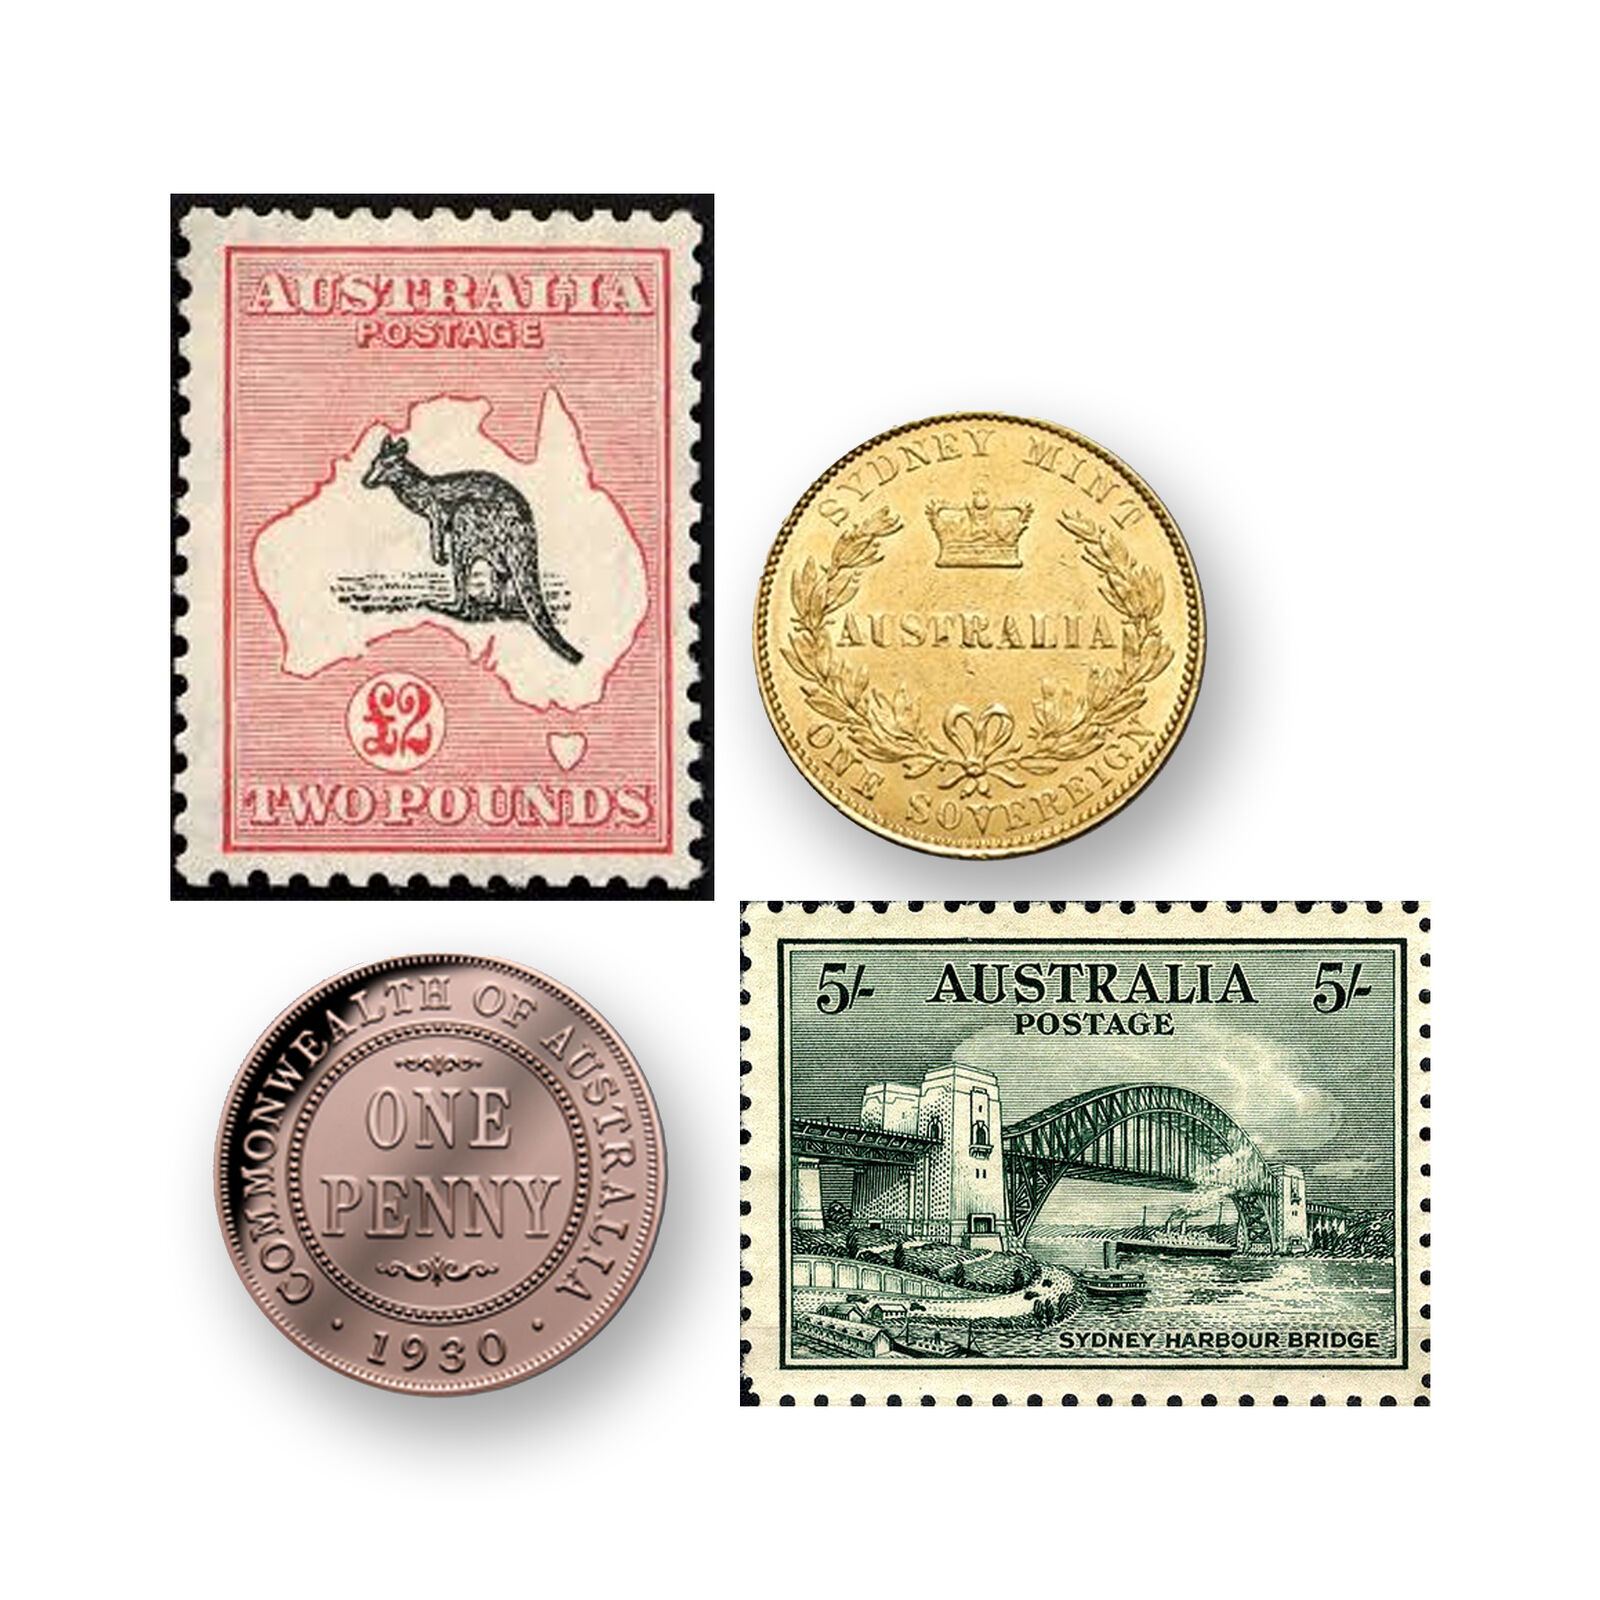 Max Stern Stamps and Coins